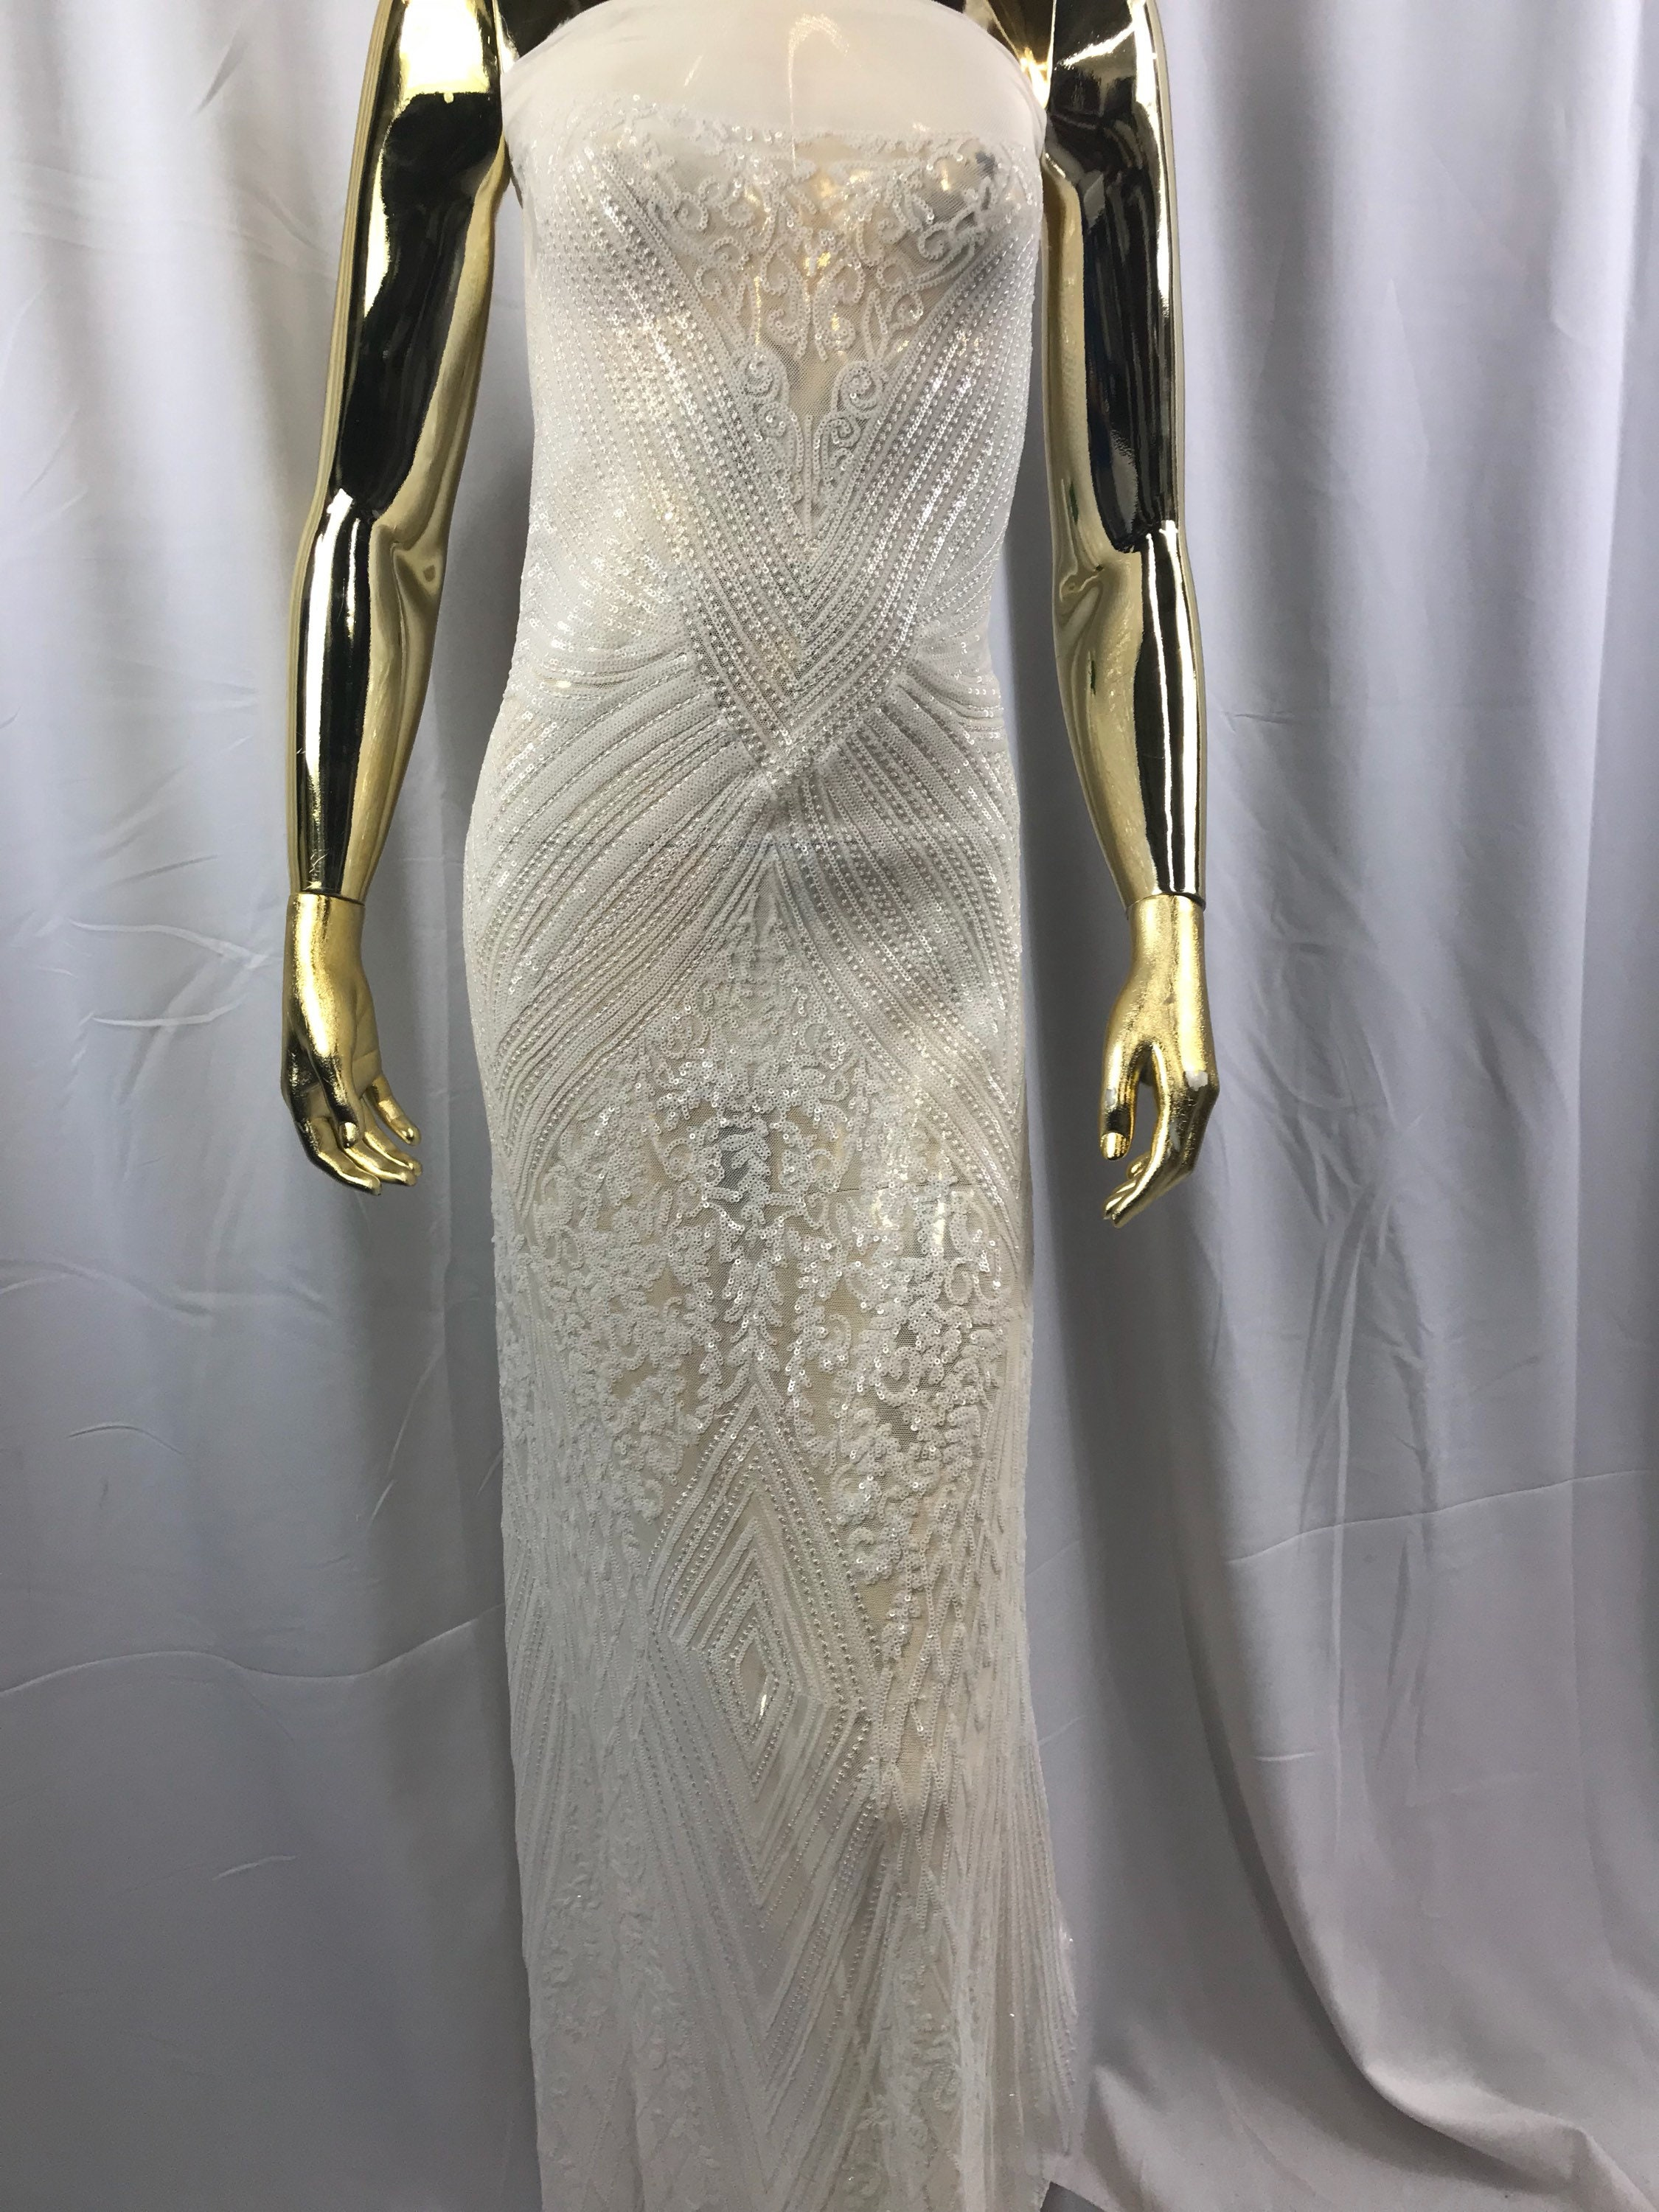 2abfed3569c 4 Way Stretch Fabric - Ivory Embroidered Sequins Lace Fashion Dress Bridal  Veil Wedding Decoration By The Yard